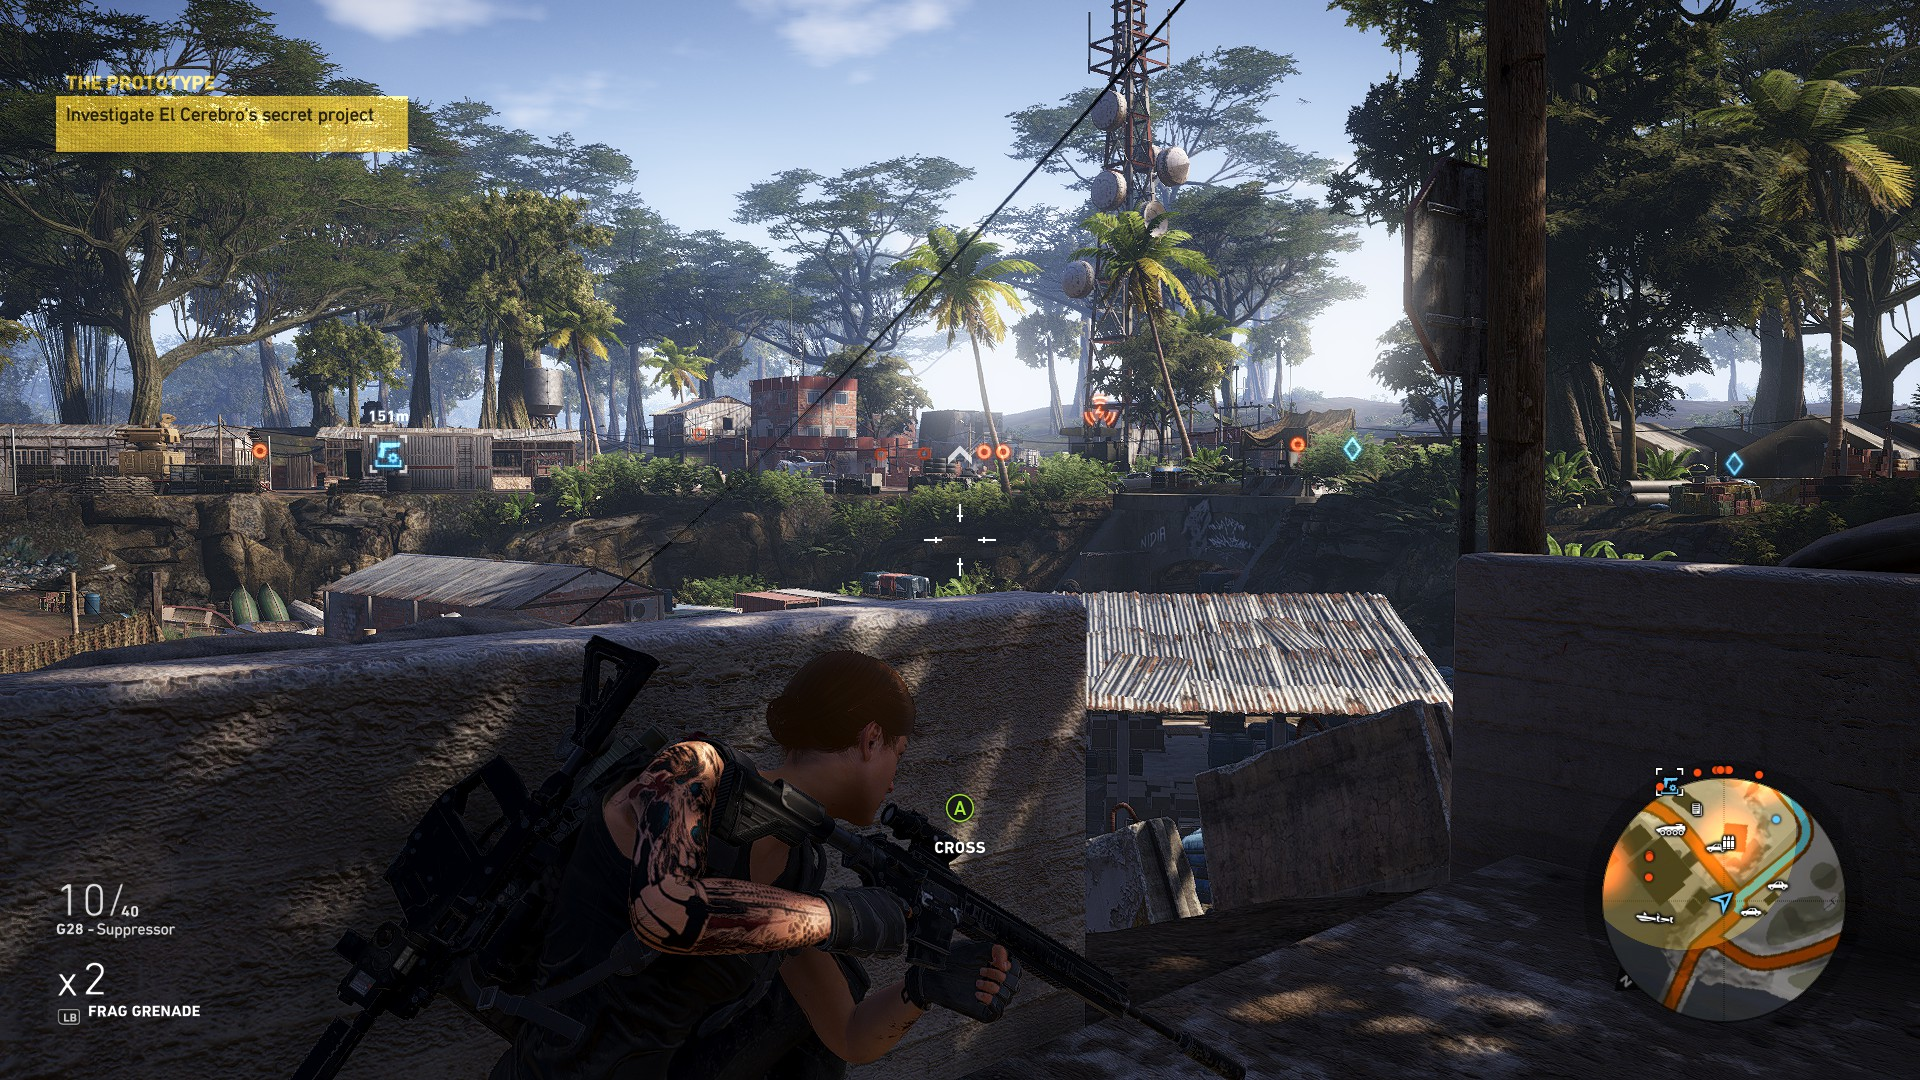 When trying to reach max level in Ghost Recon Wildlands, it can be a good idea to unlock powerful weapons to help you better cope in the difficult areas.